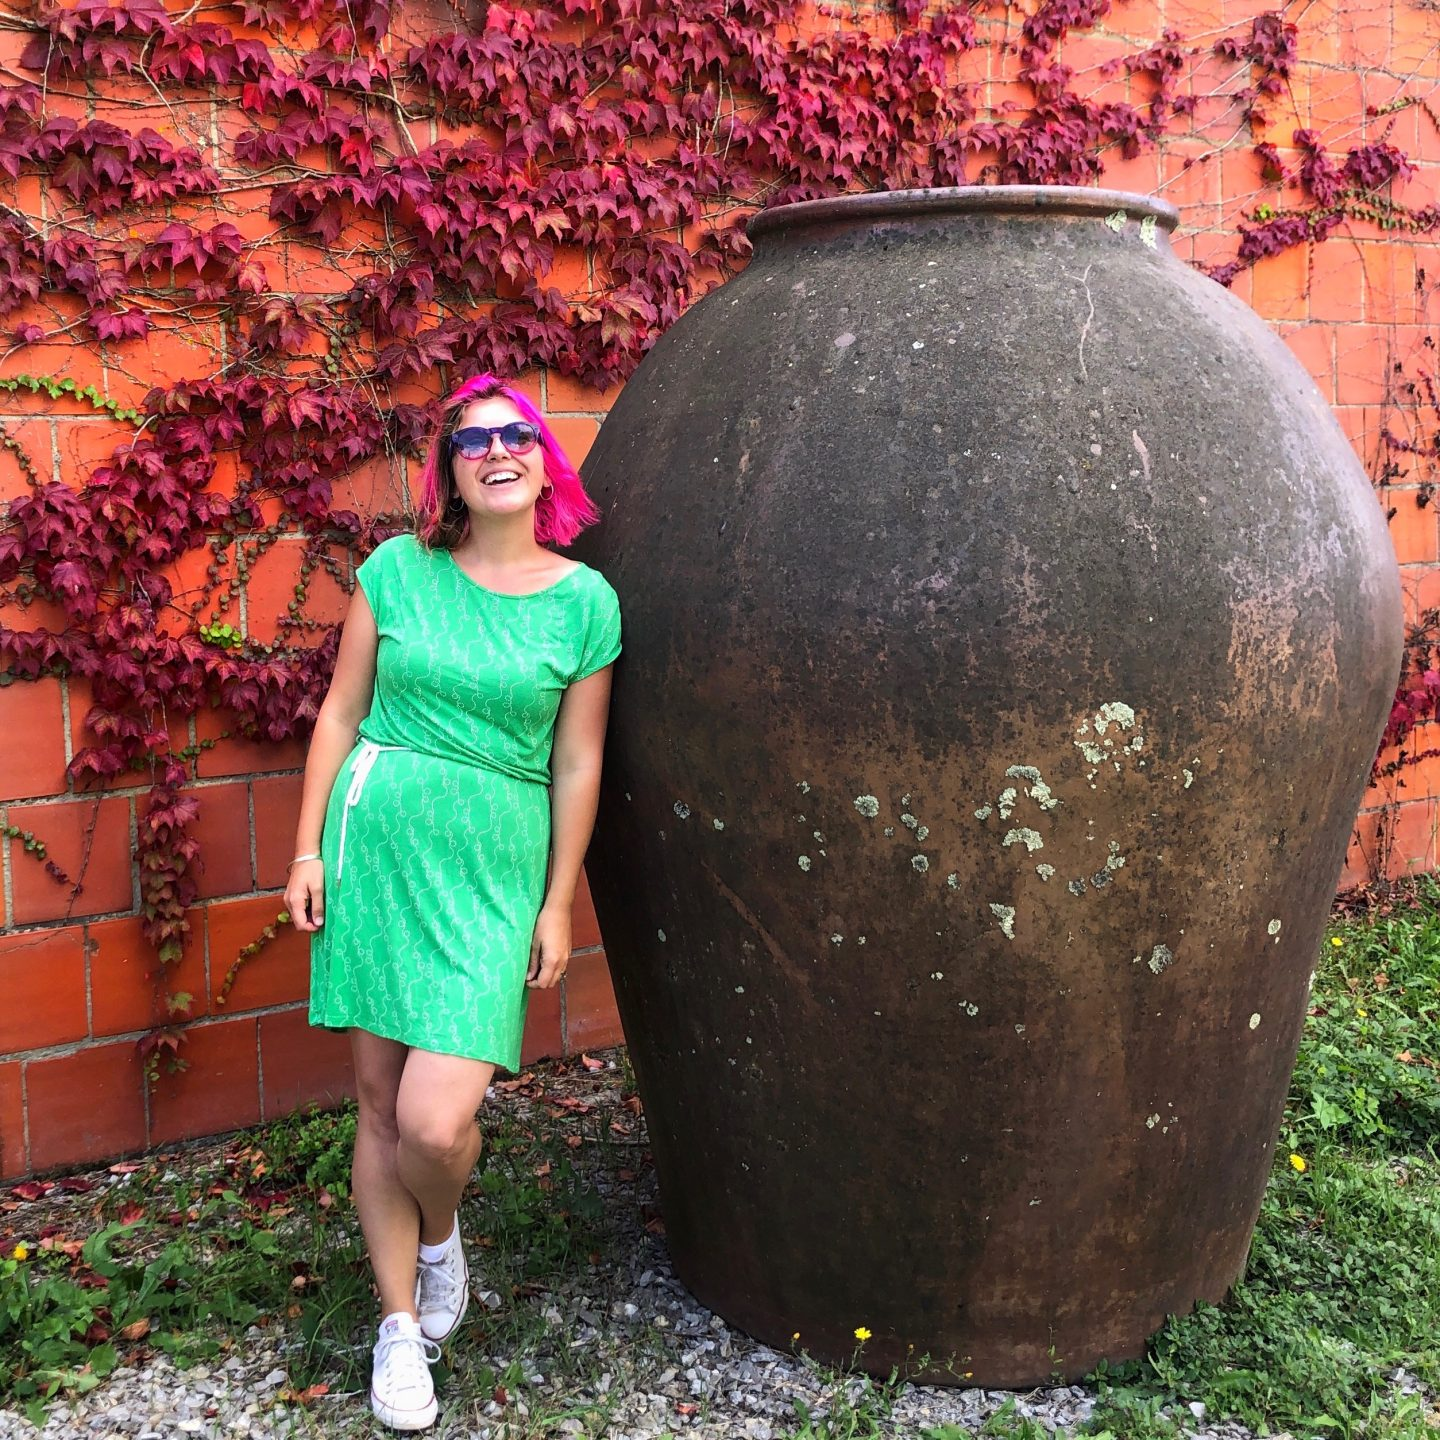 A photo of me in a bright green dress standing by a 6 foot plus olive oil vase demonstrating how warm the weather was on our October trip to Tuscany with Bookings for You.